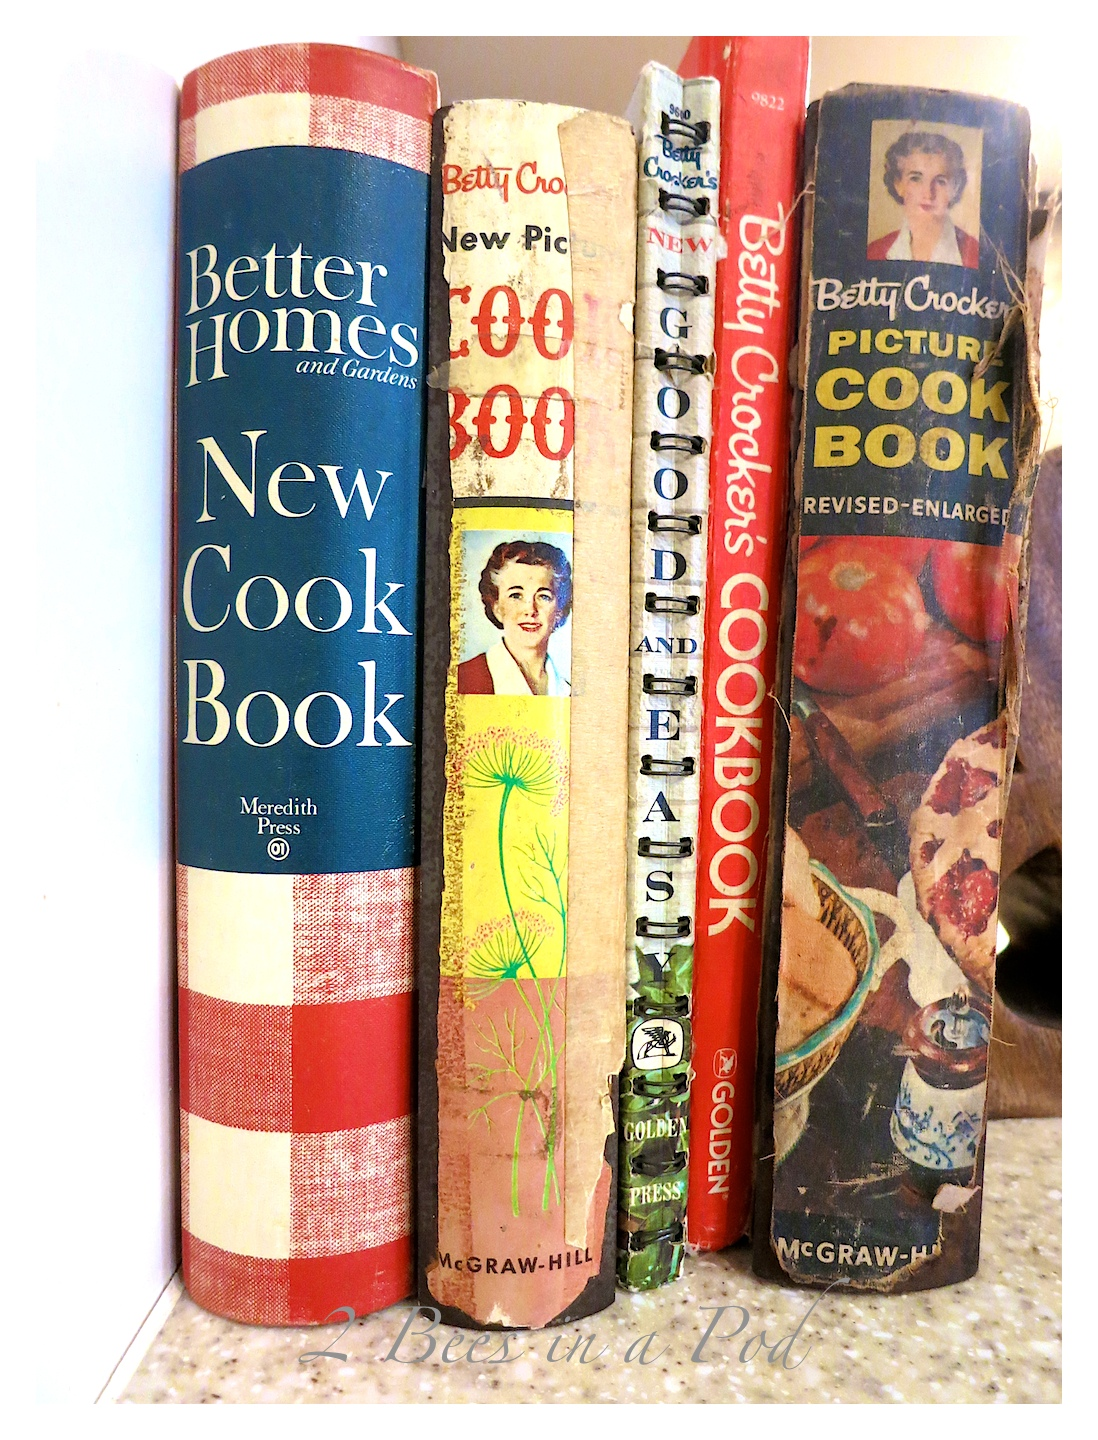 Collection of inherited vintage cookbooks...This is just a sampling. Most of these are Betty Crocker cookbooks from the 1950's and 1960's